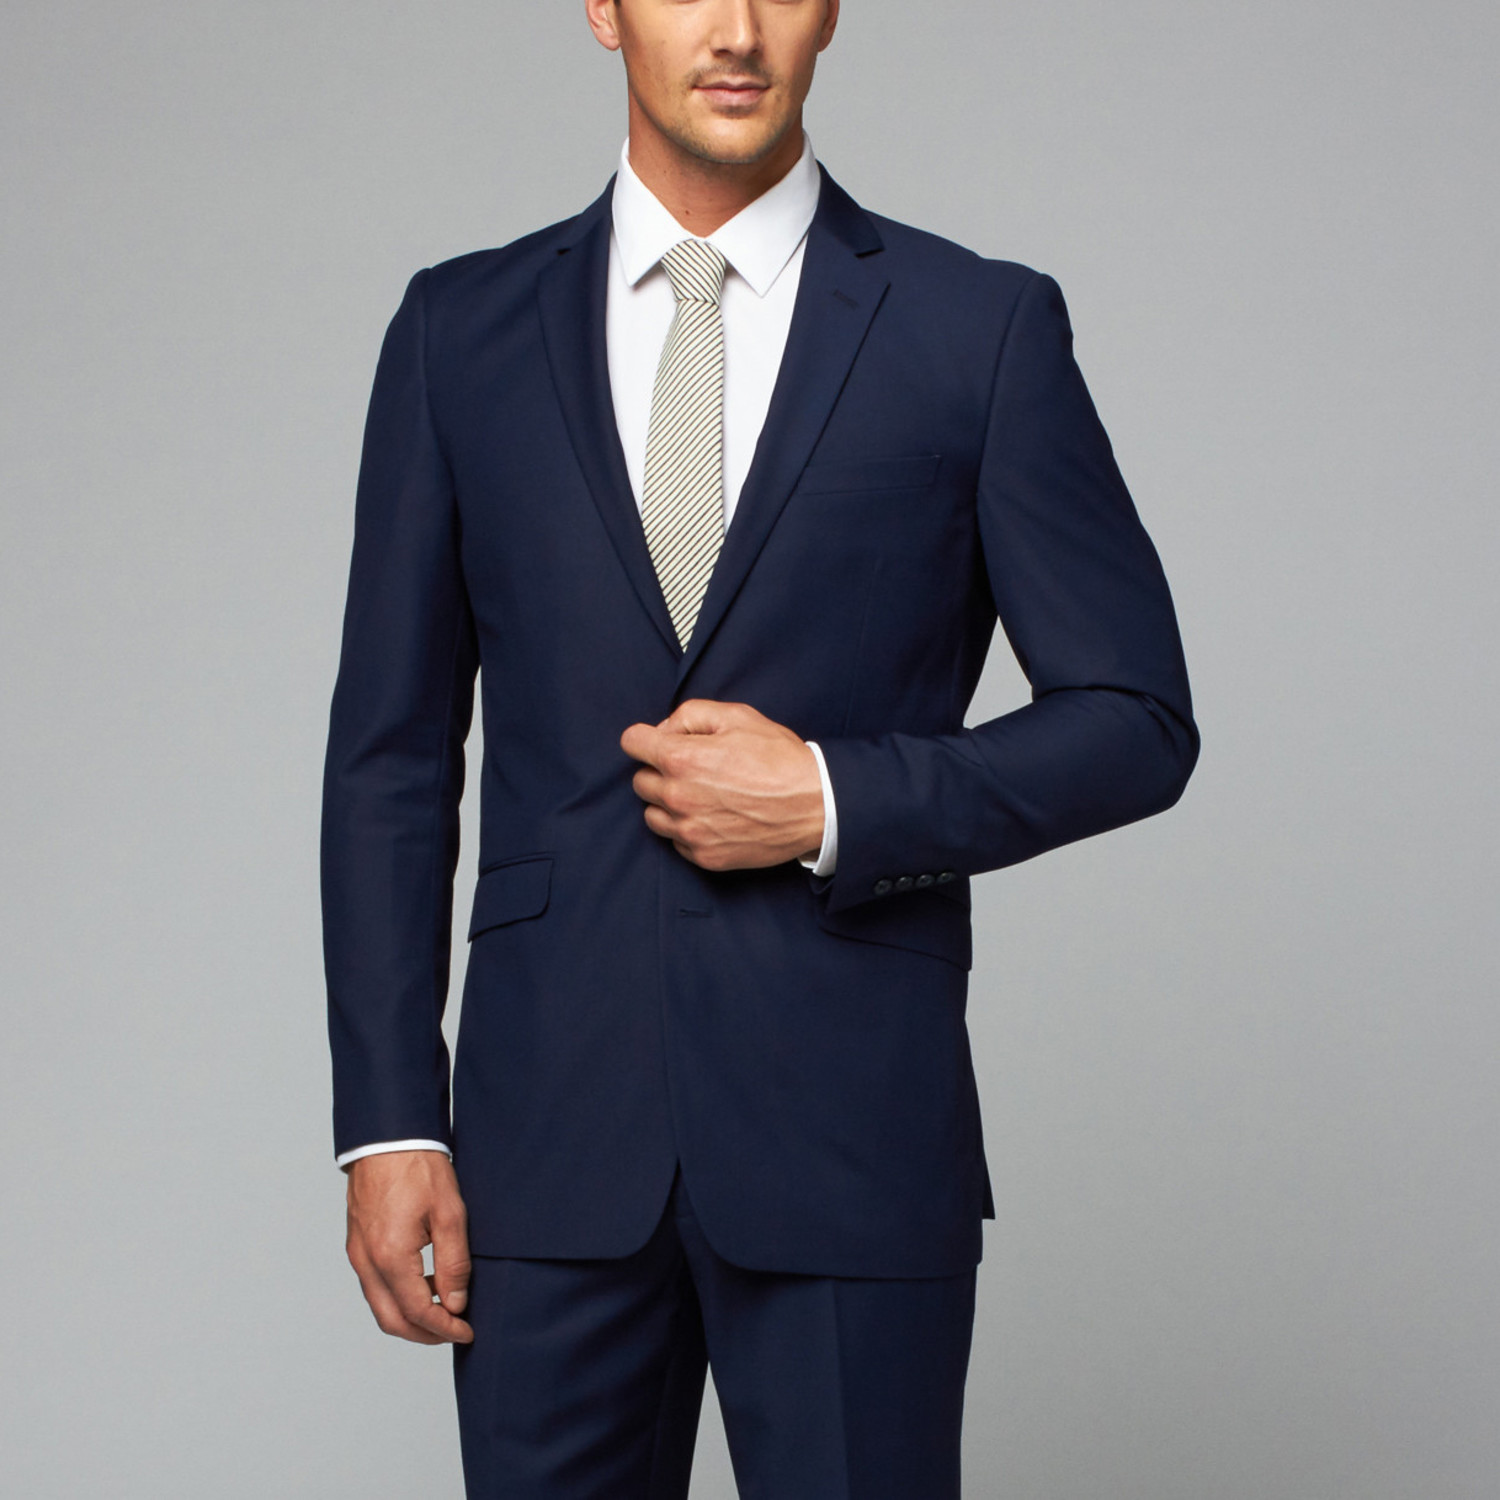 Navy Blue 2 Piece Suit | My Dress Tip